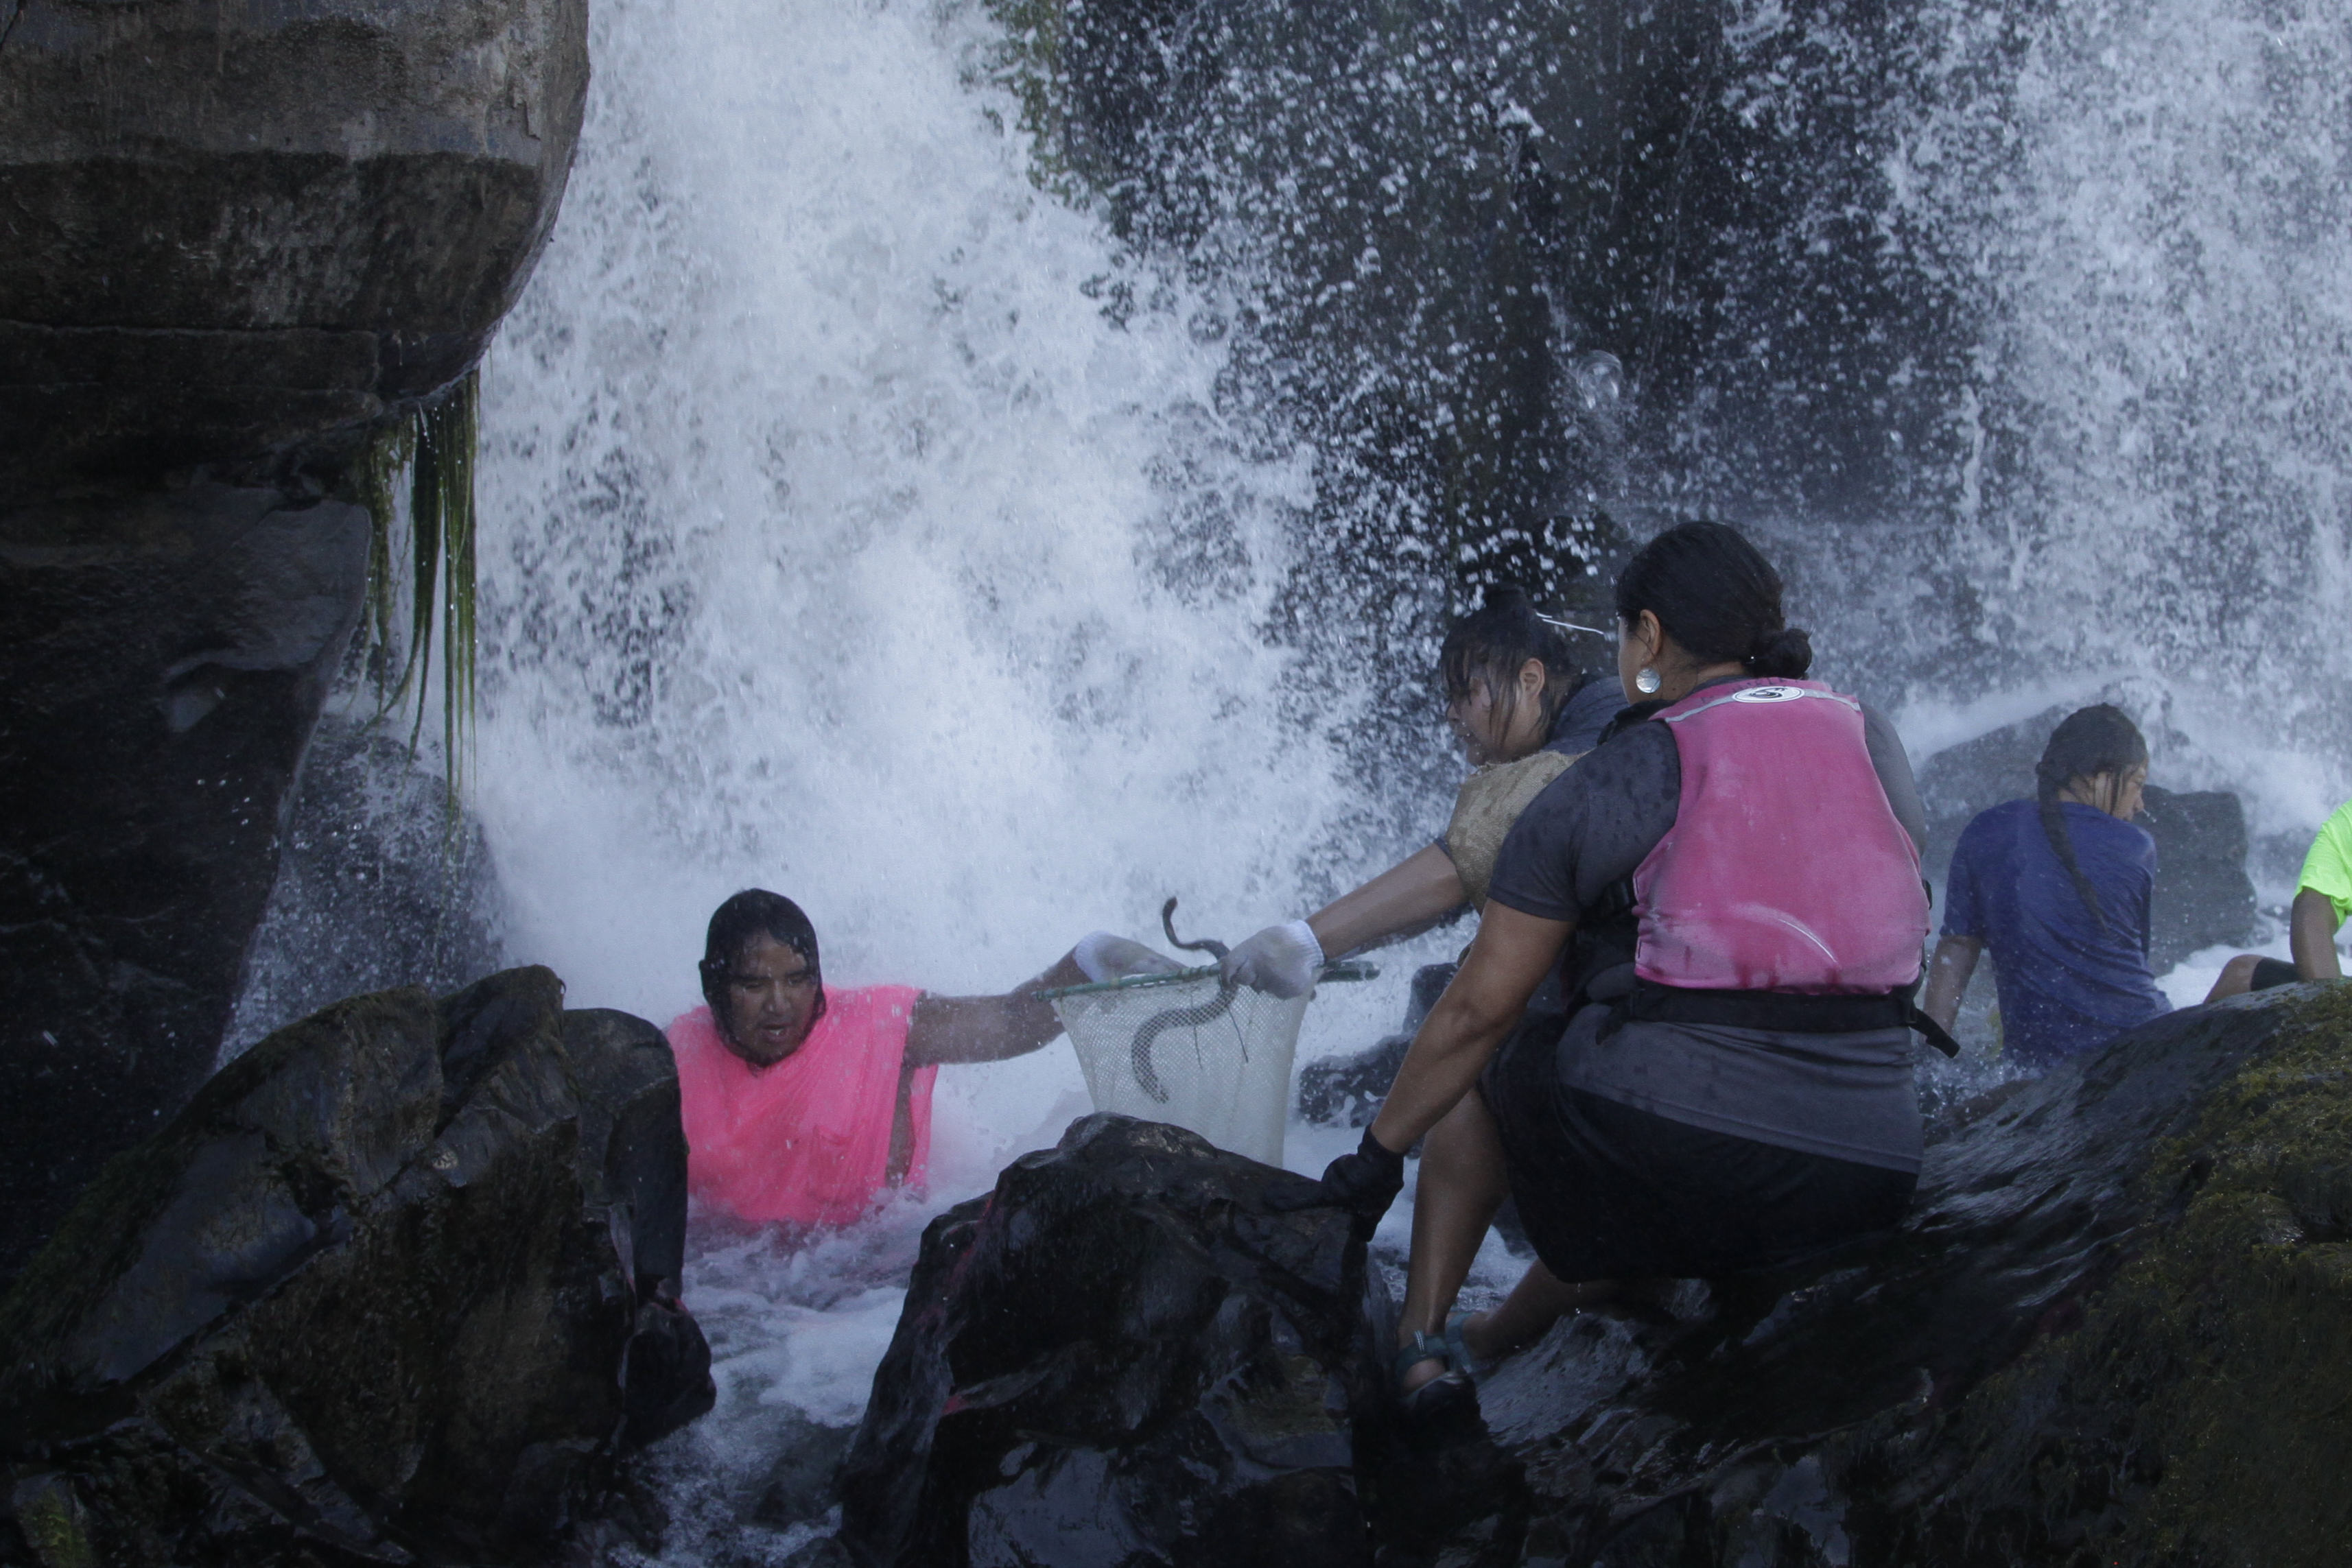 In this Friday, June 12, 2015 photo, Native Americans catch lamprey, eel-like fish, at Willamette Falls, a 40-foot waterfall south of Portland, Oregon. An ancient fish that's a source of food for tribes in the Pacific Northwest, lampreys have been in drastic decline in recent decades. (AP/Gosia Wozniacka)